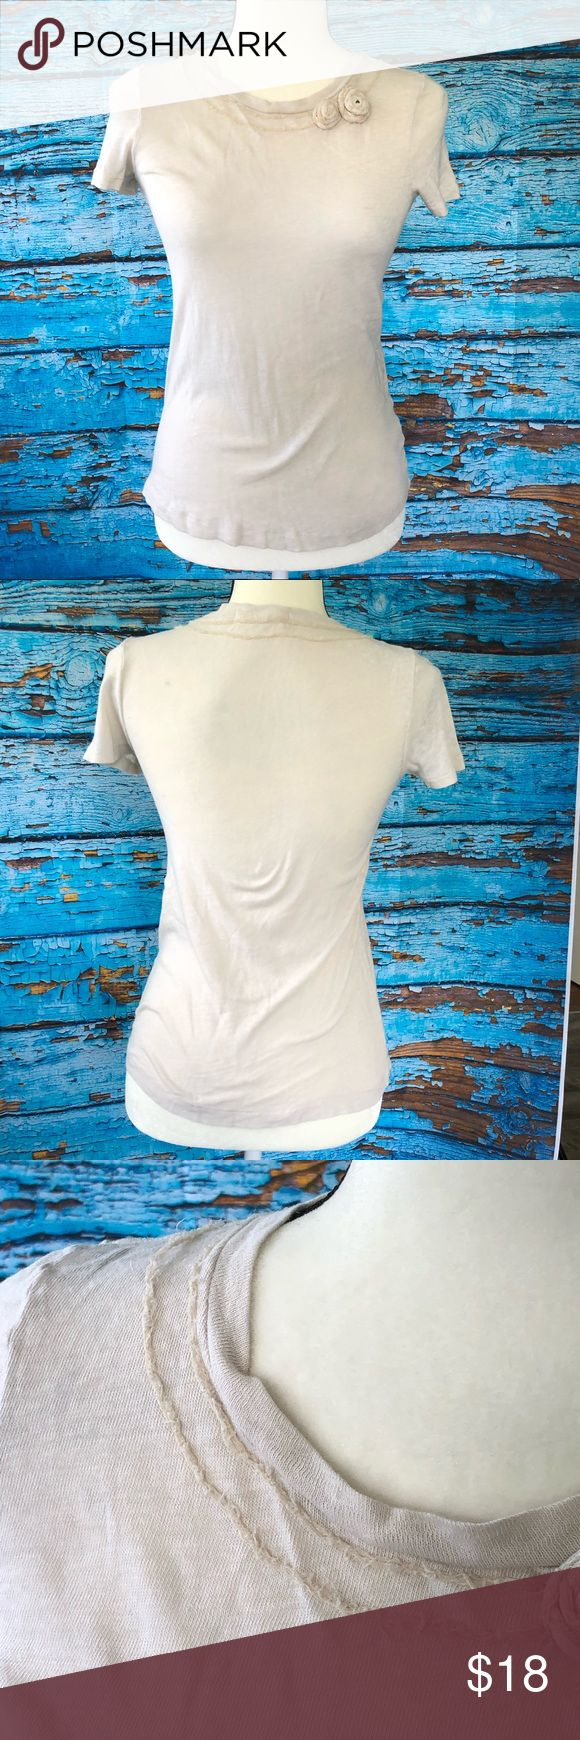 J. Crew embellished Top Gorgeous dainty flower embellishments and around entire neckline. Labeled Small but it's a thinner very stretchy material, therefore could fit XXS to Med.  Very flattering with a scooped neckline.  EUC: no tears or stains J. Crew Tops Tees - Short Sleeve